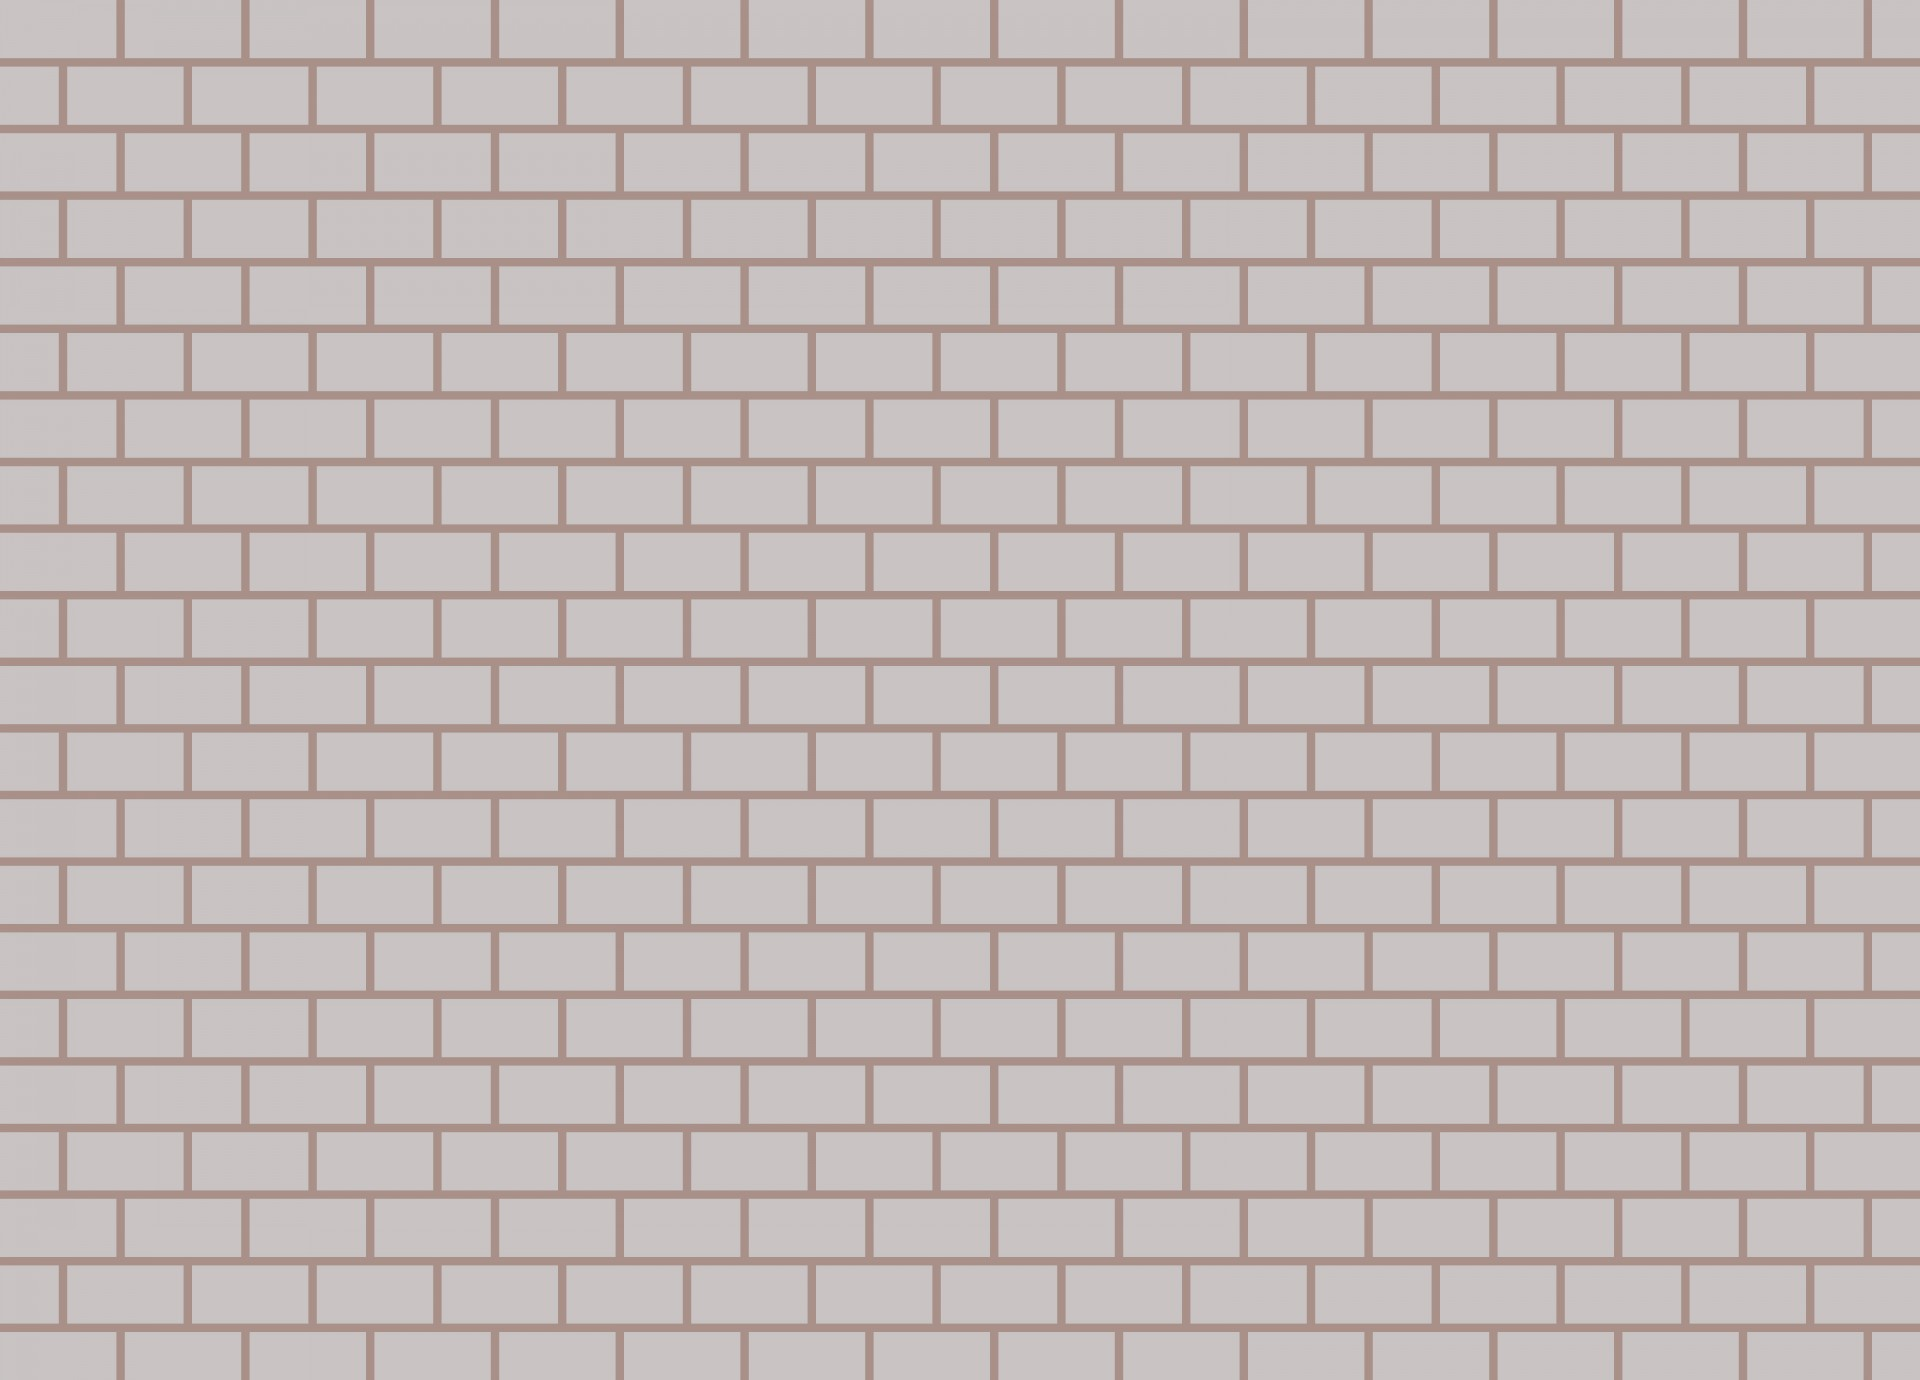 Wall clipart public domain banner black and white Illustration,clipart,clip art,graphic,background - free ... banner black and white